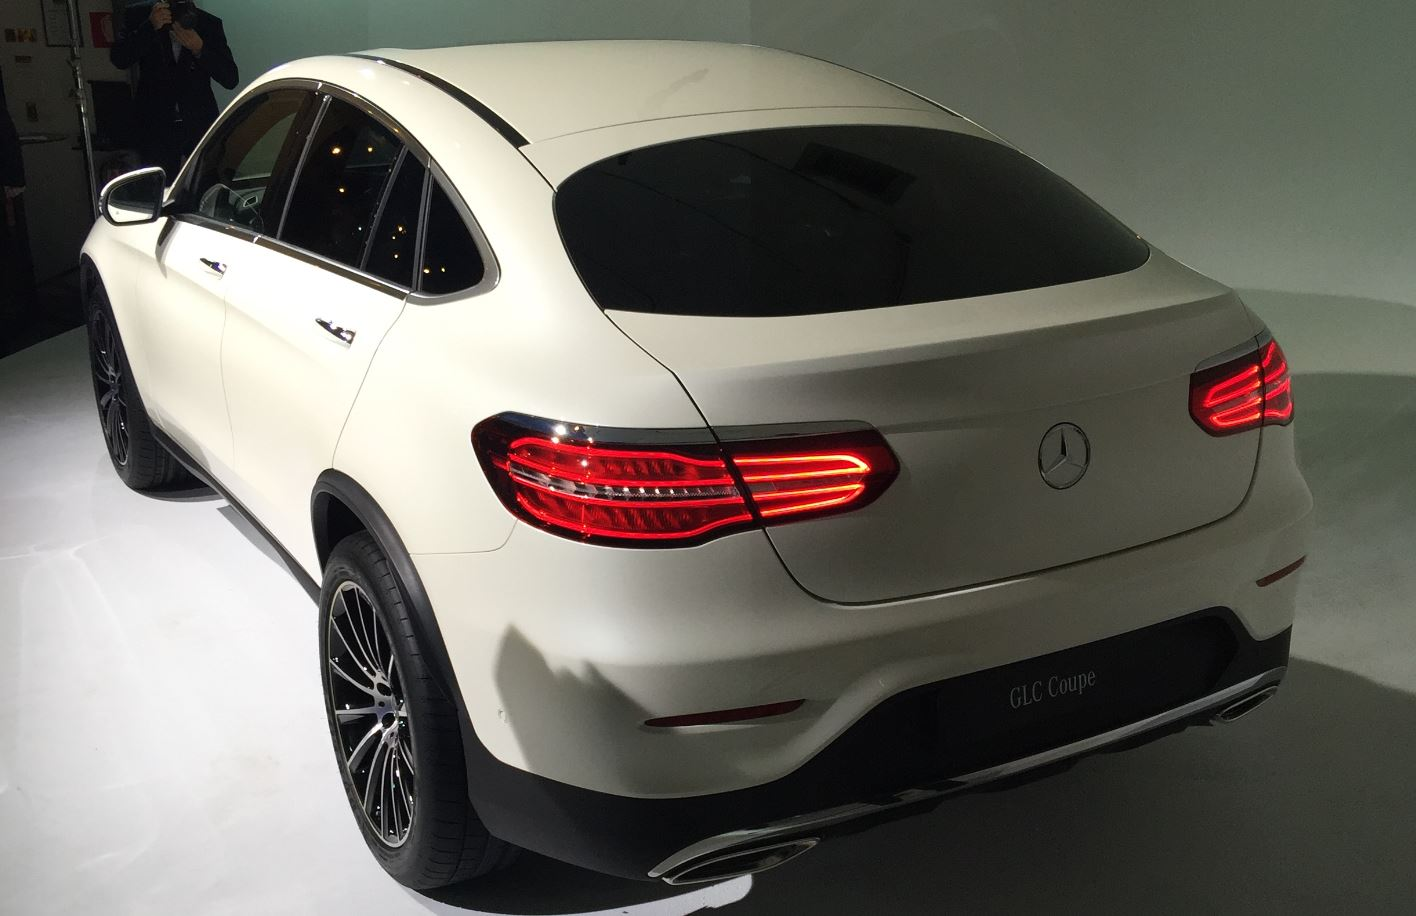 nueva york 2016 mercedes benz glc coupe 2017 univision. Black Bedroom Furniture Sets. Home Design Ideas